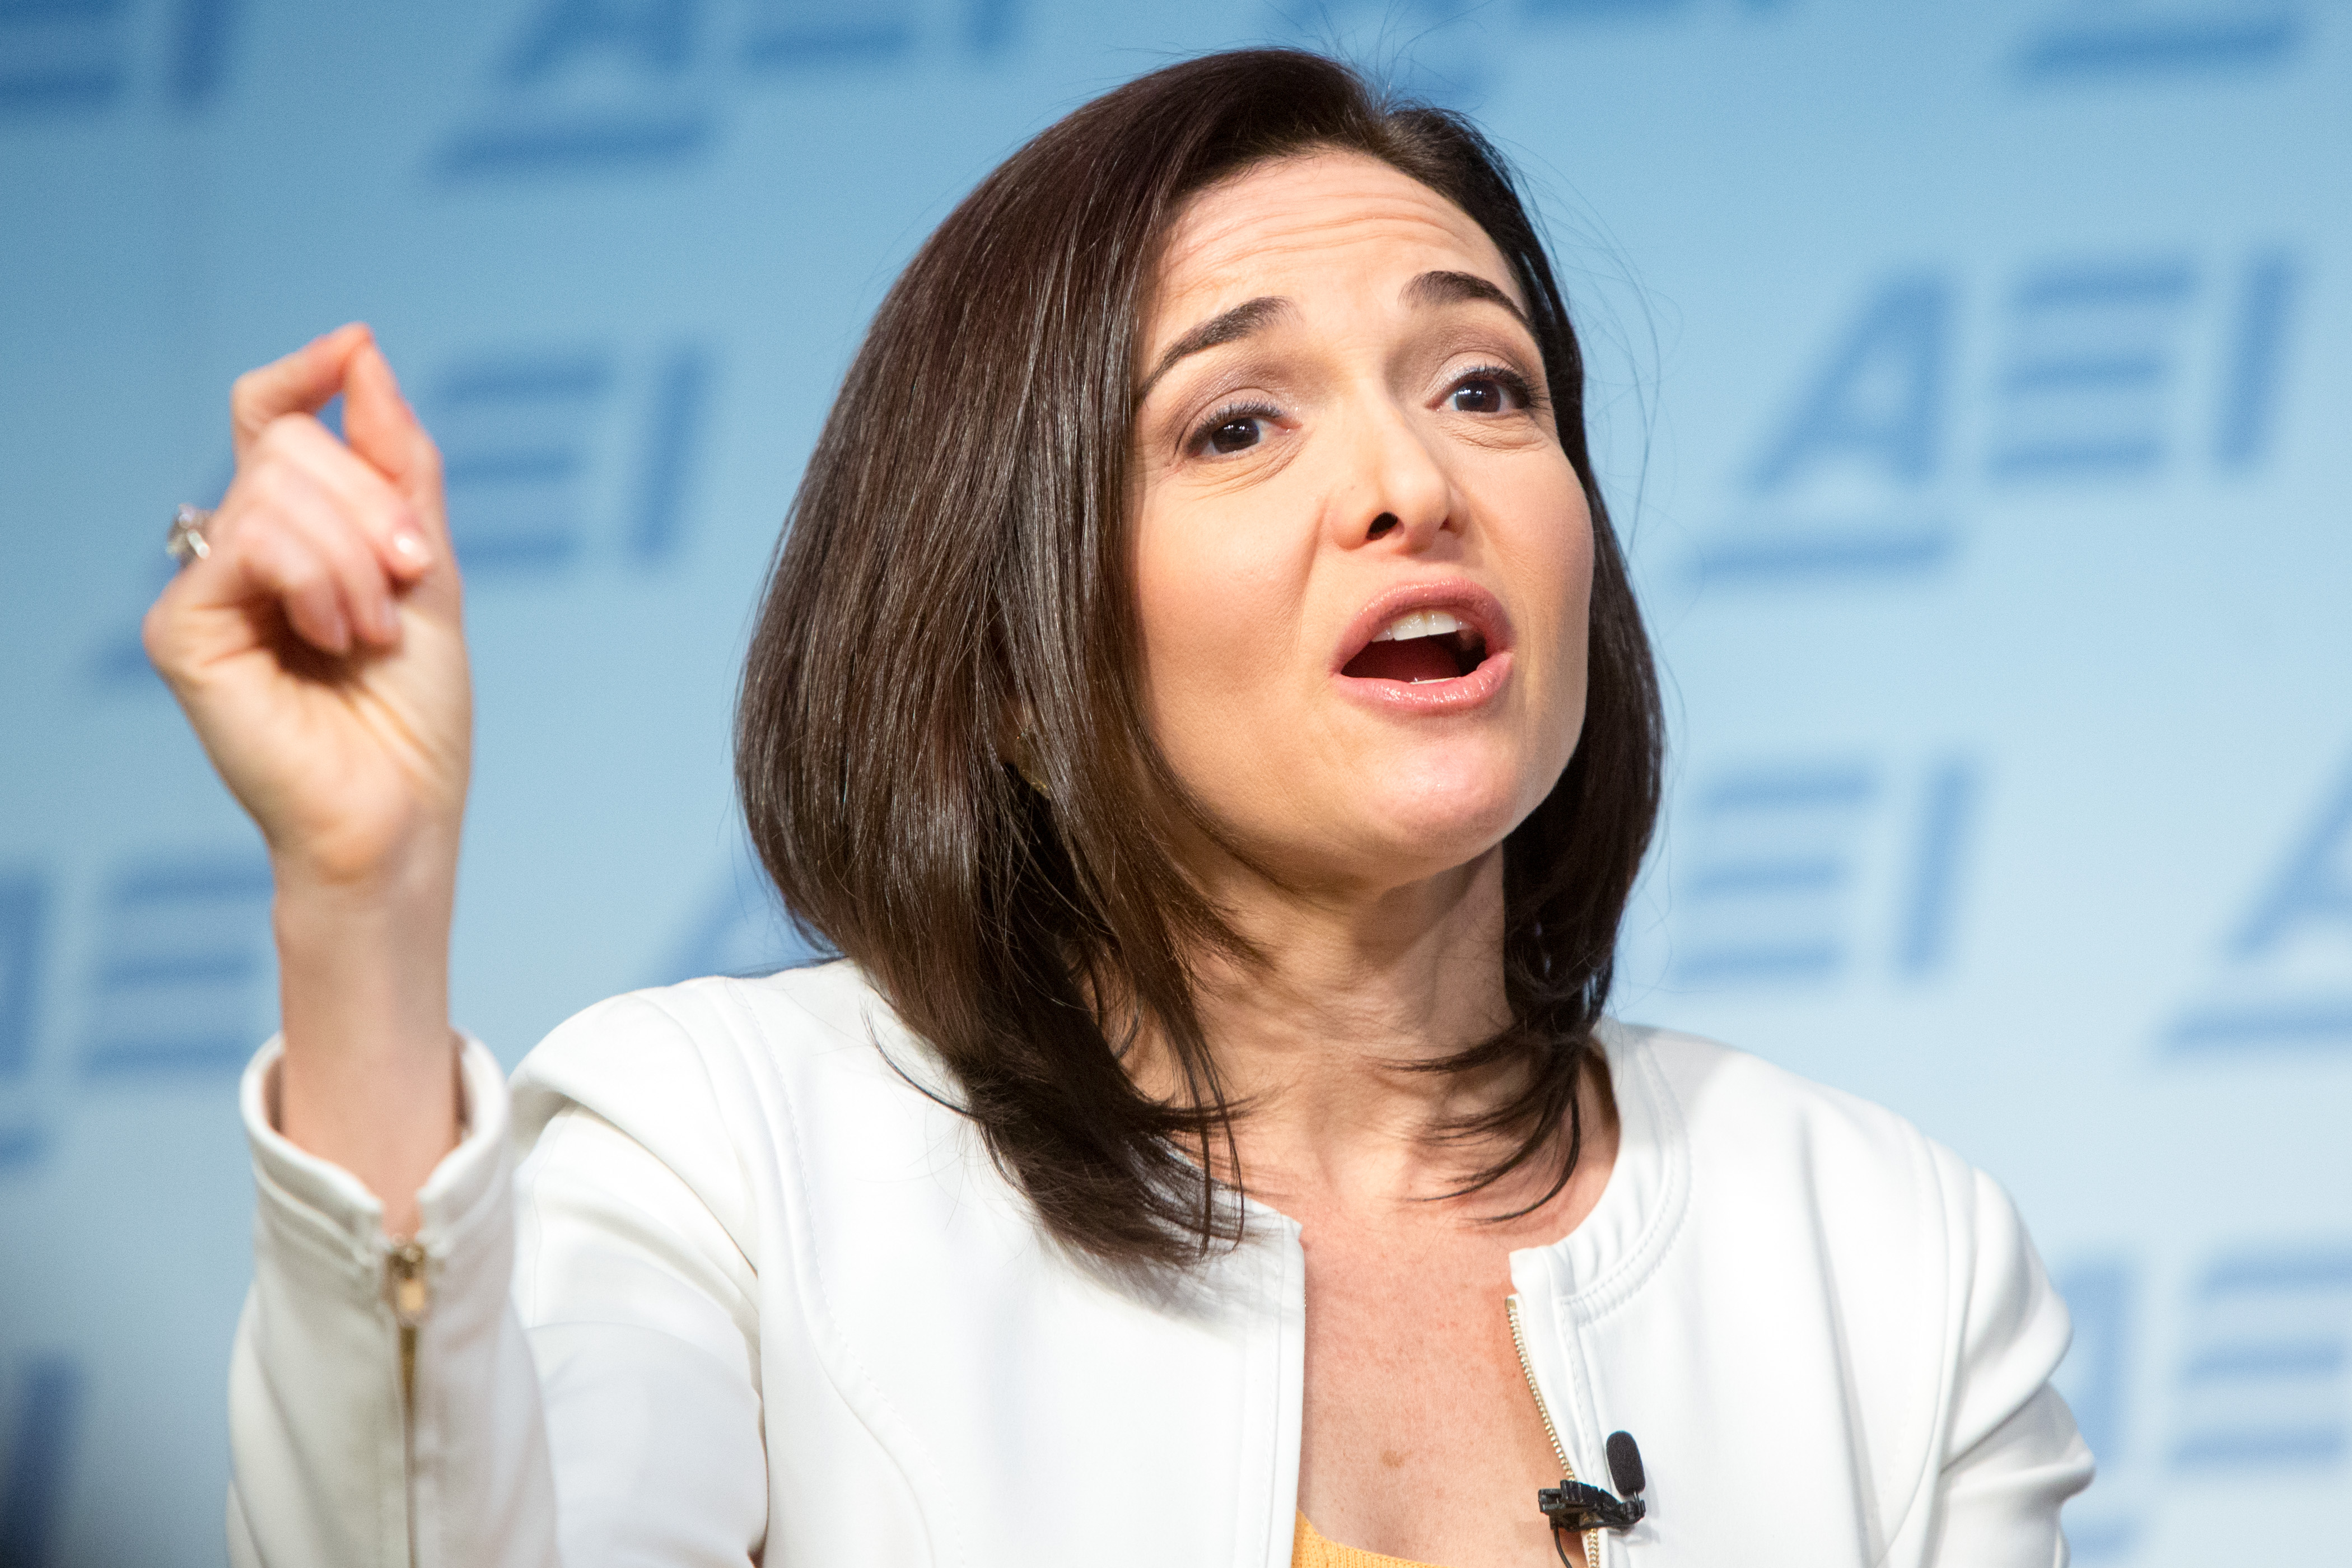 Facebook's Chief Operating Officer Sheryl Sandberg Speaks At The American Enterprise Institute In D.C.